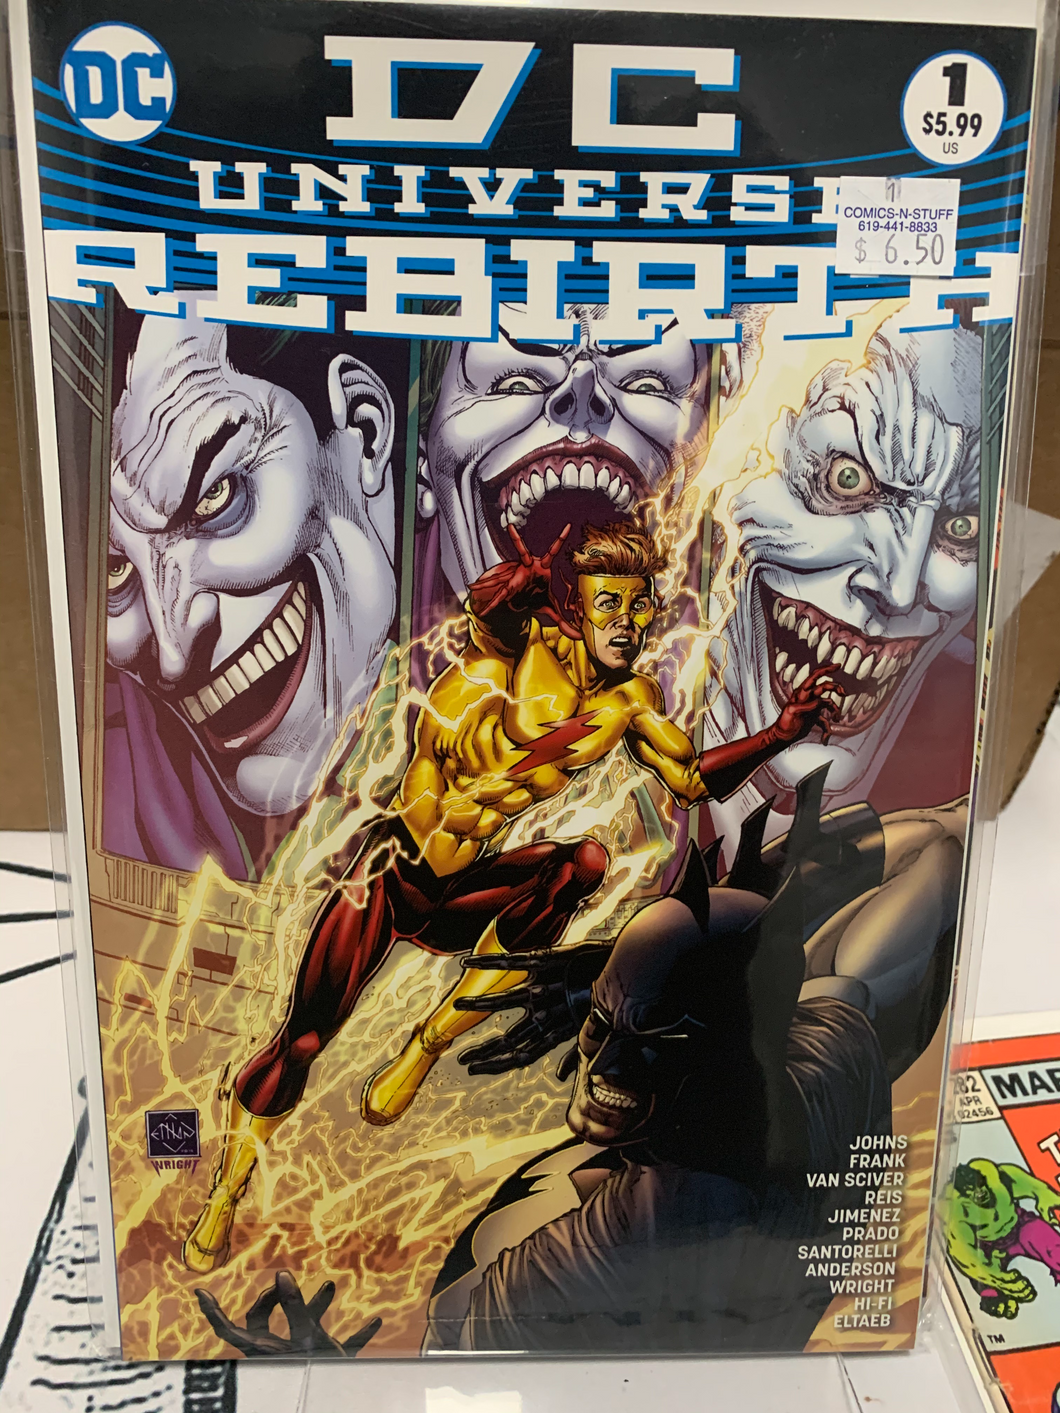 DC UNIVERSE REBIRTH #1 4TH PRINT